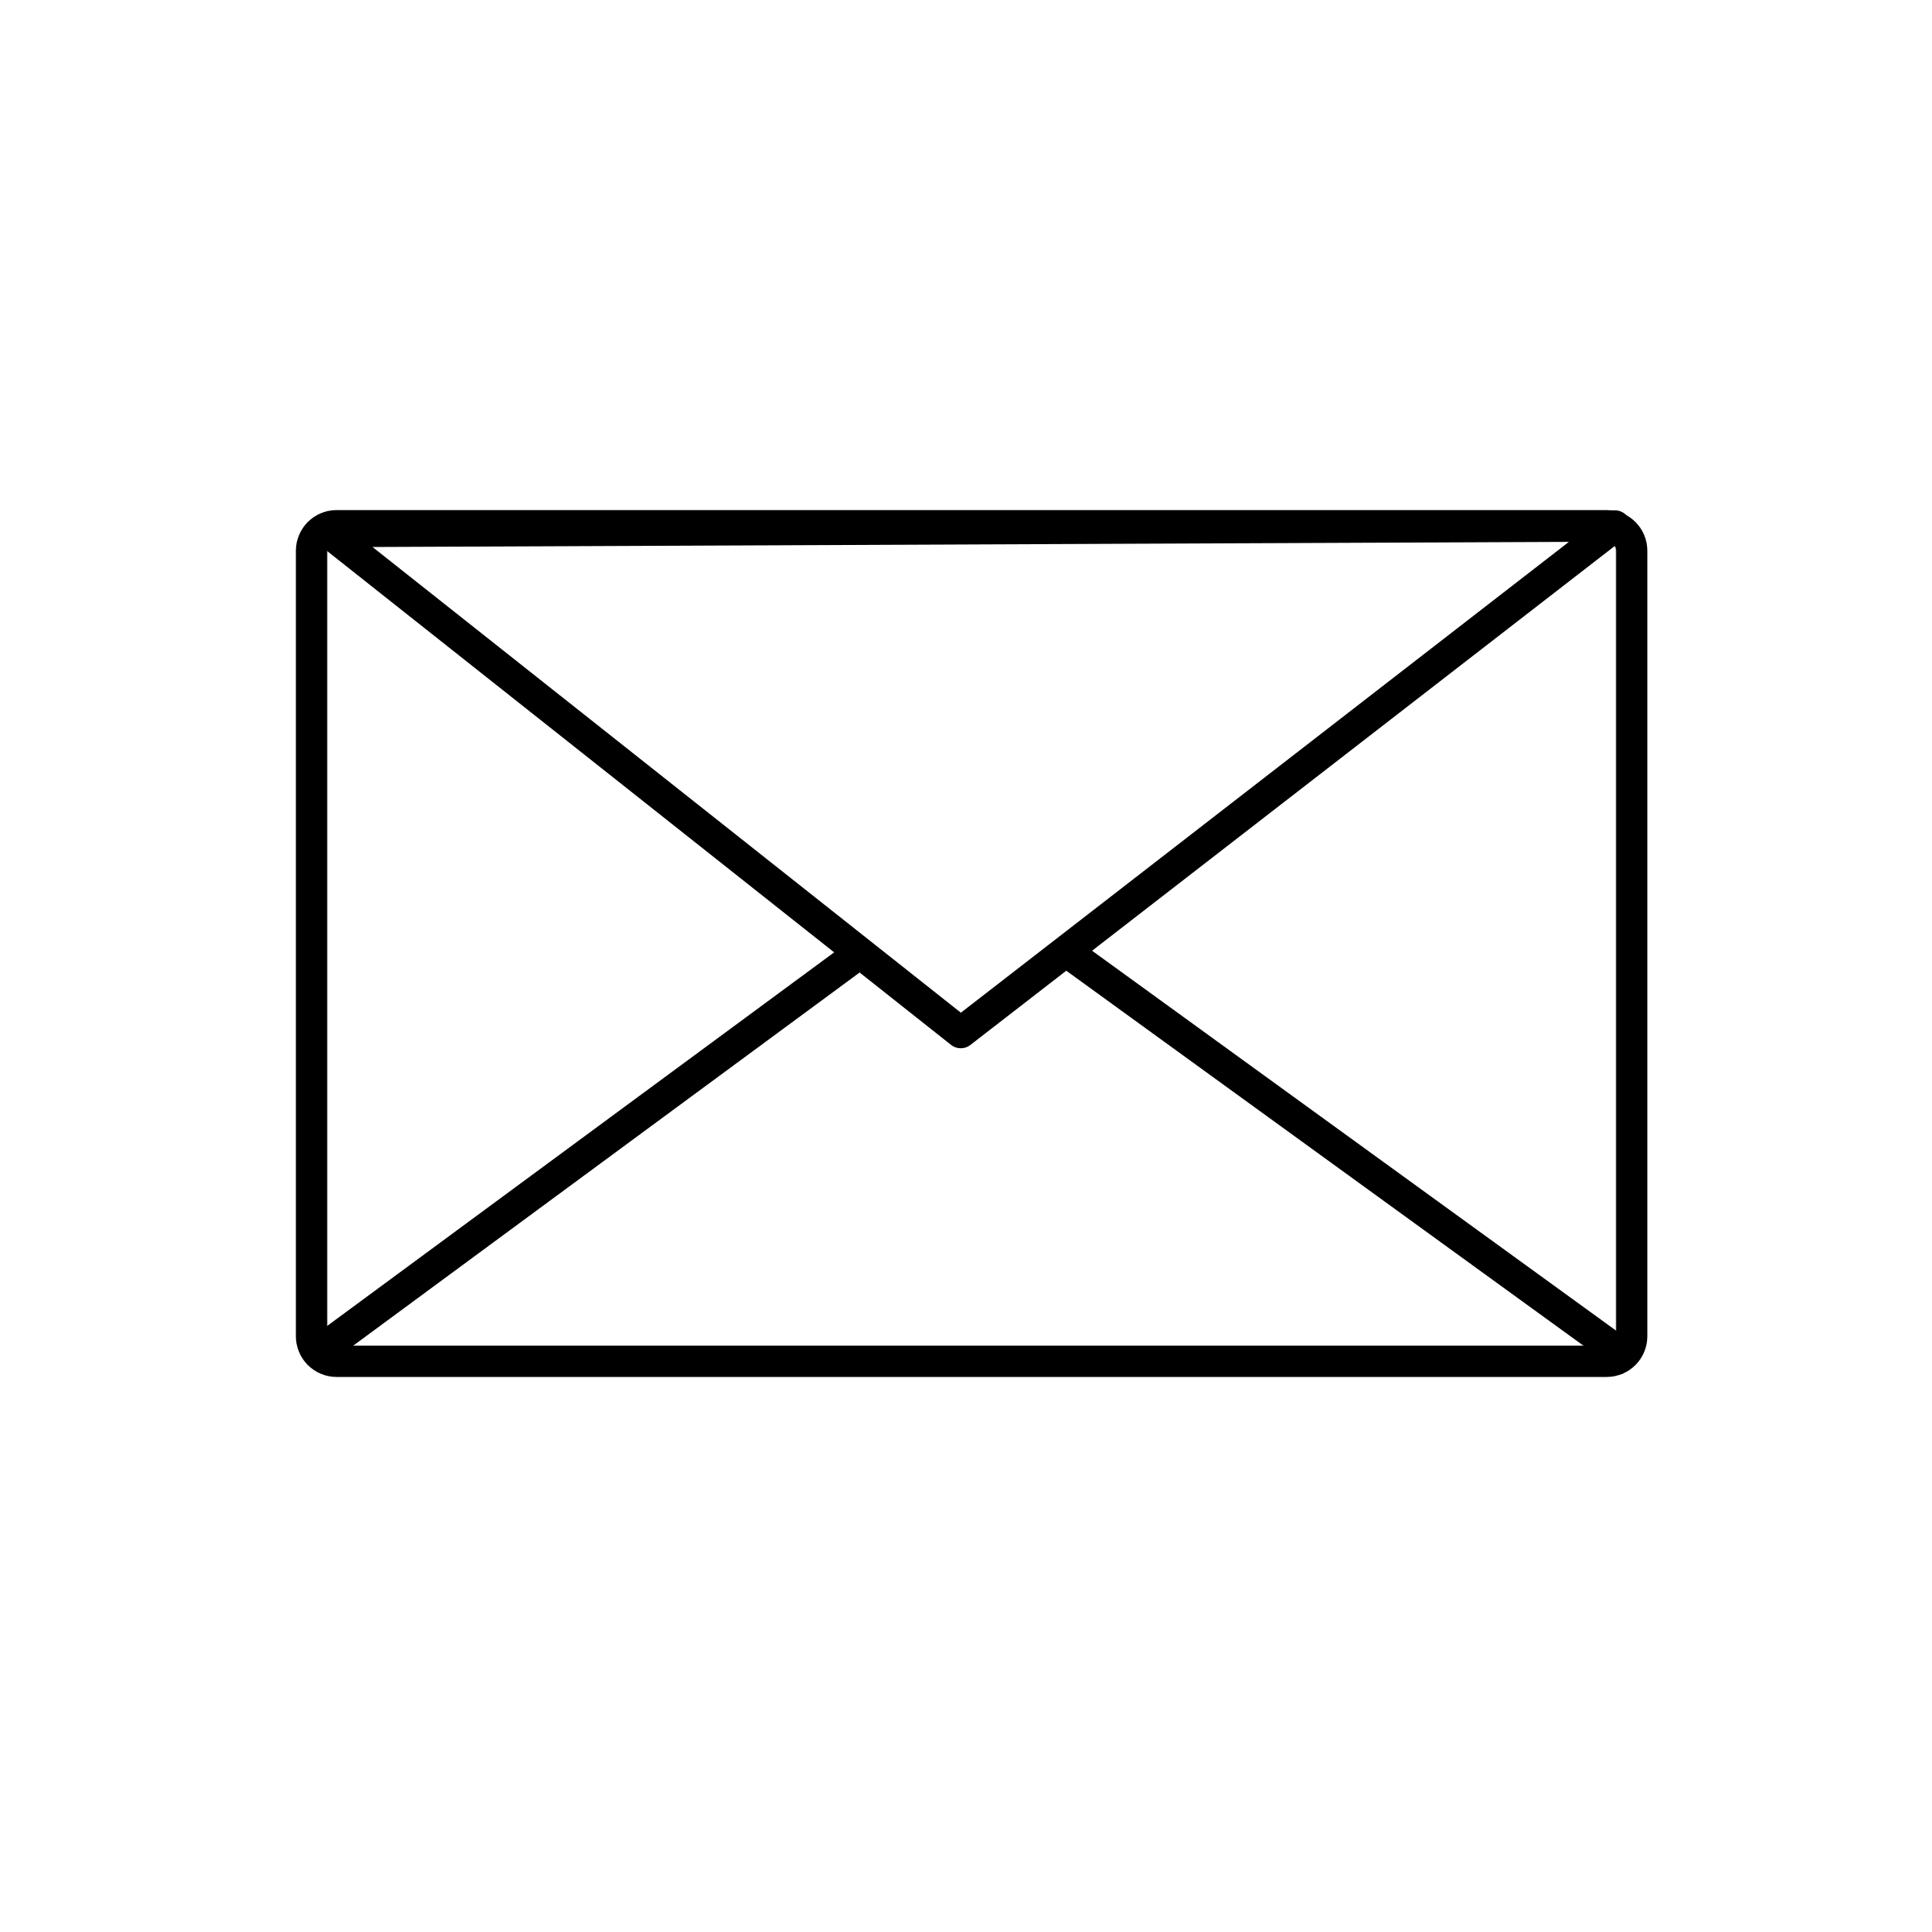 Protect Your Mail With Informed Delivery Village Of San